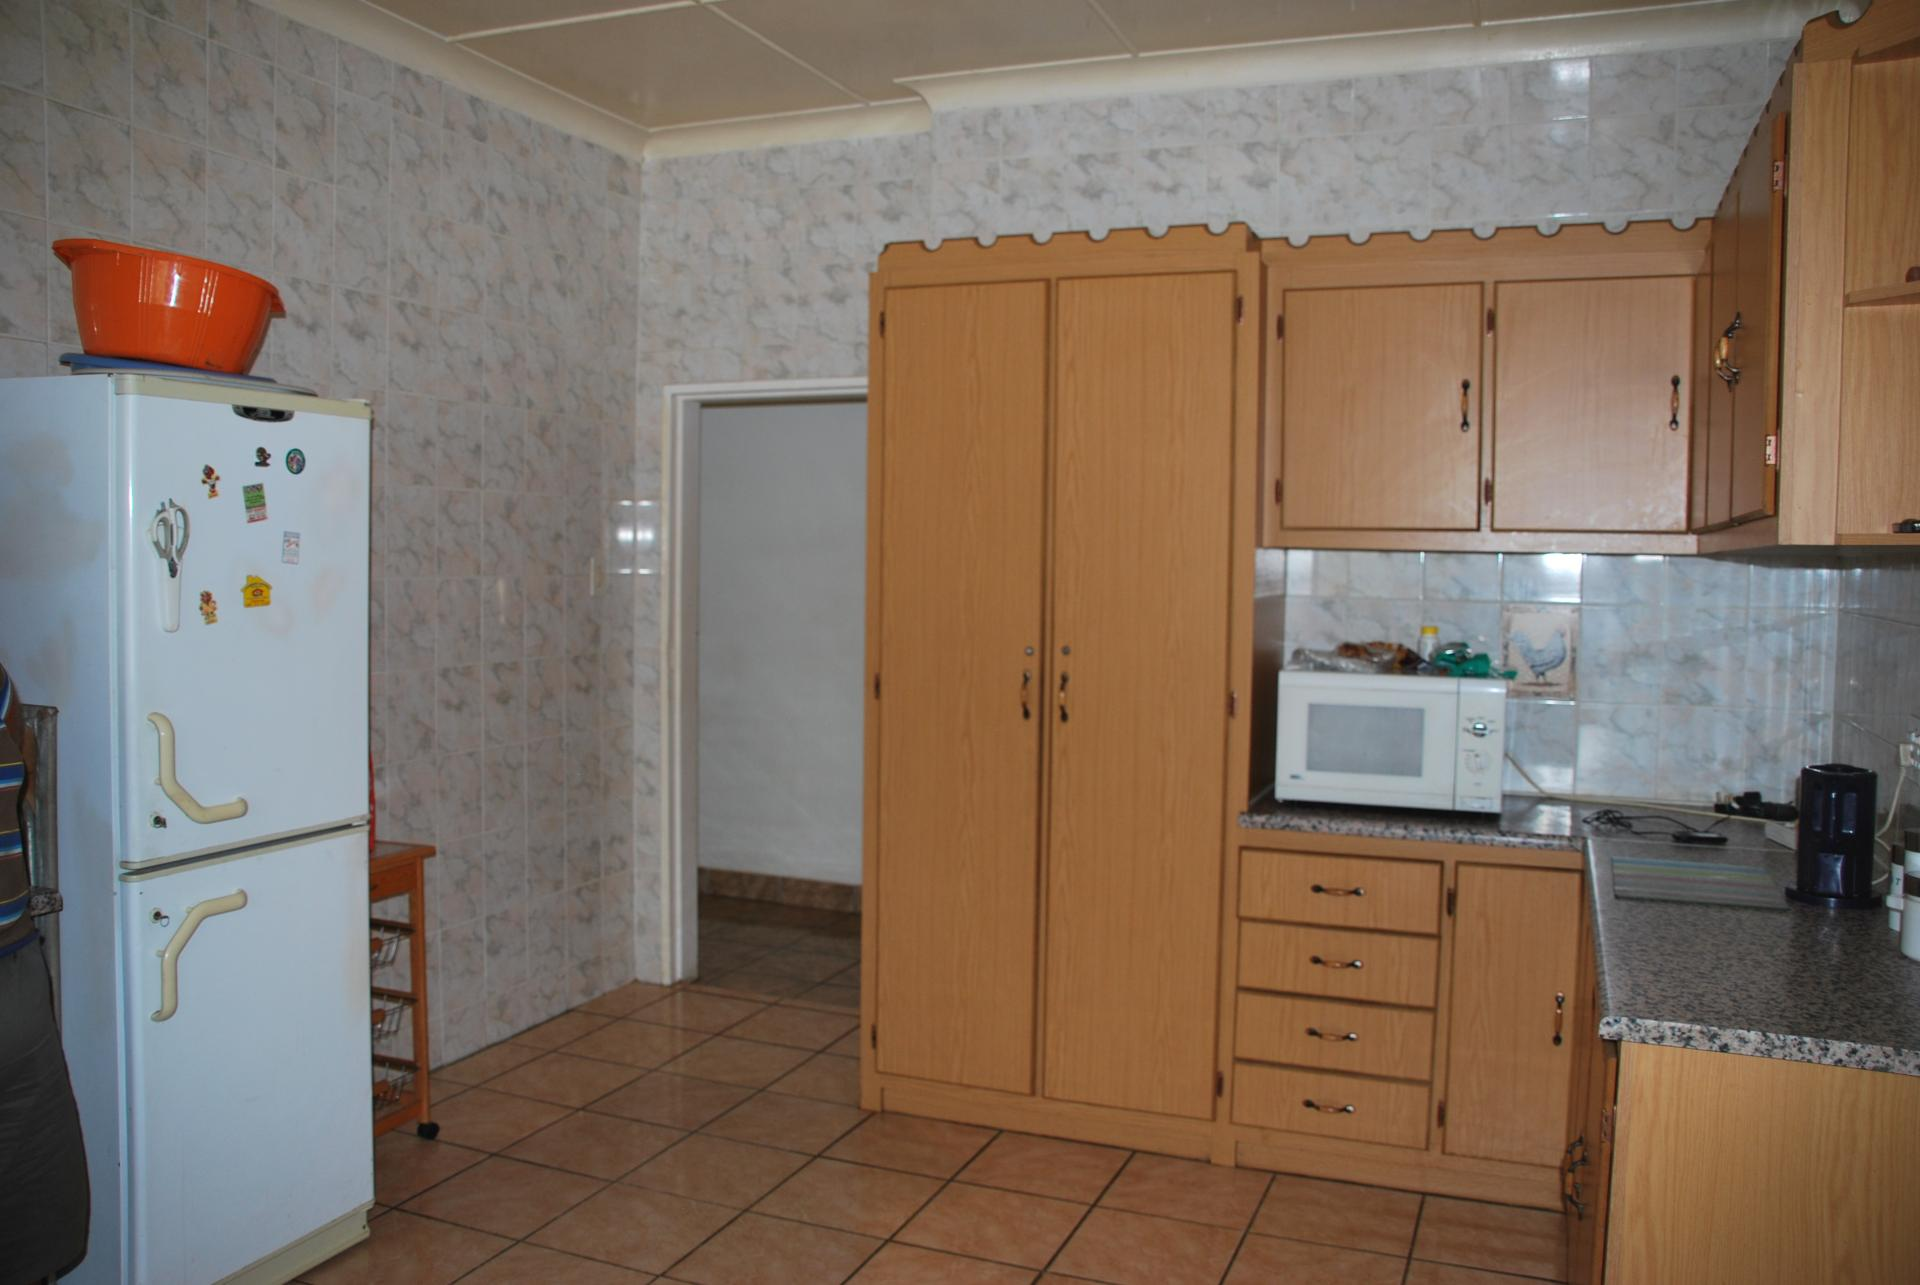 Kitchen of property in Vredefort